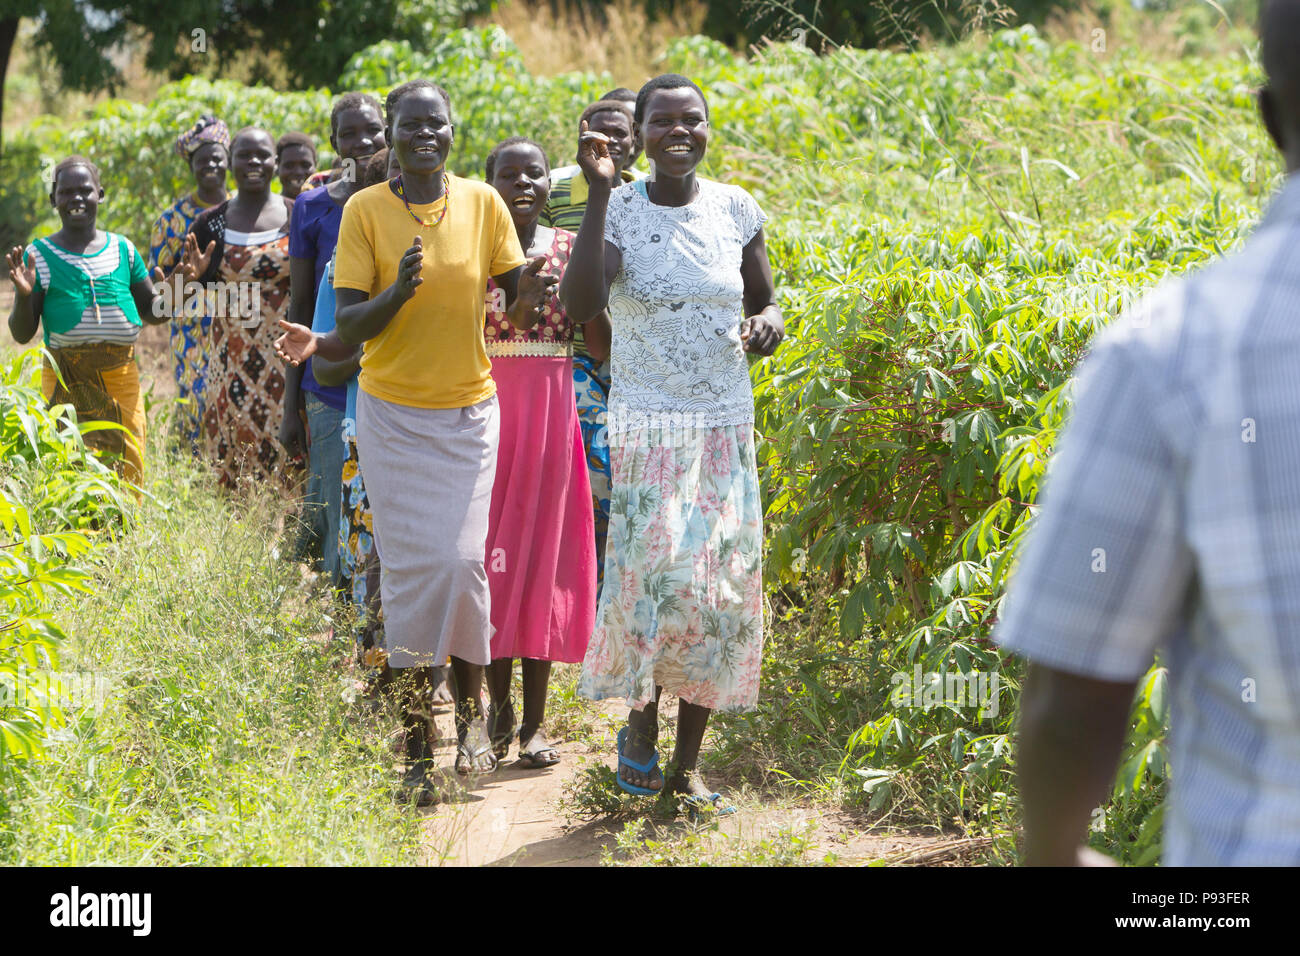 Adjumani, Uganda - Women of a village community meet a singing and dancing on a path. Stock Photo